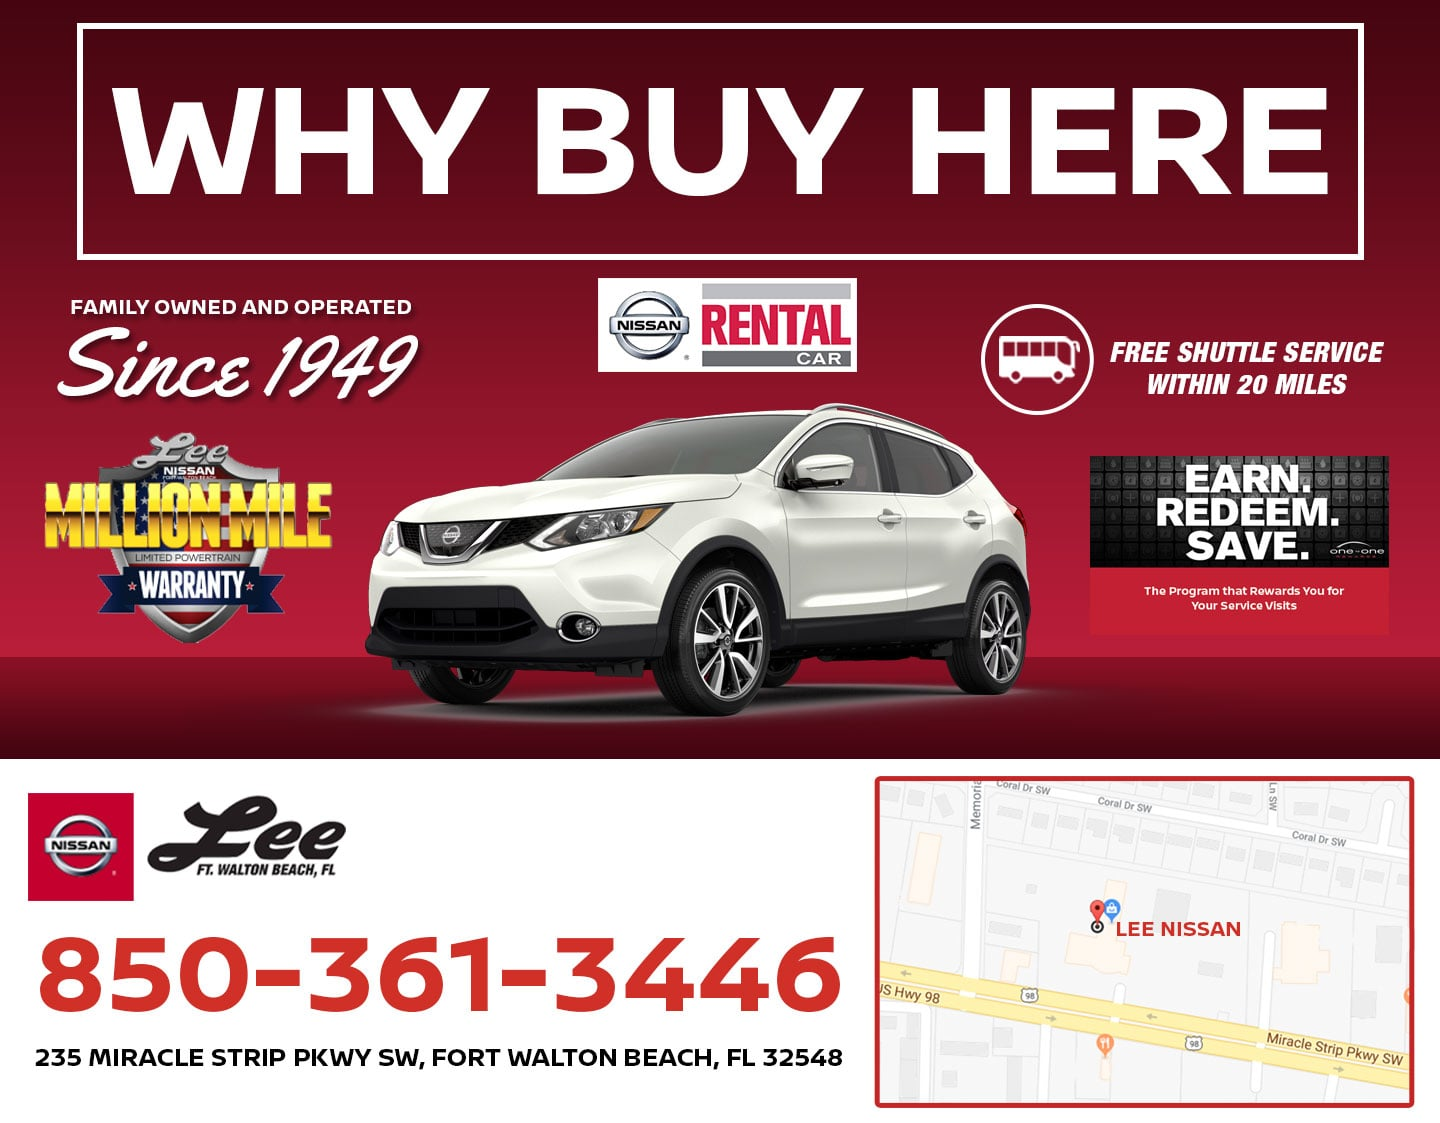 Why Buy From Lee Nissan in Fort Walton Beach, FL